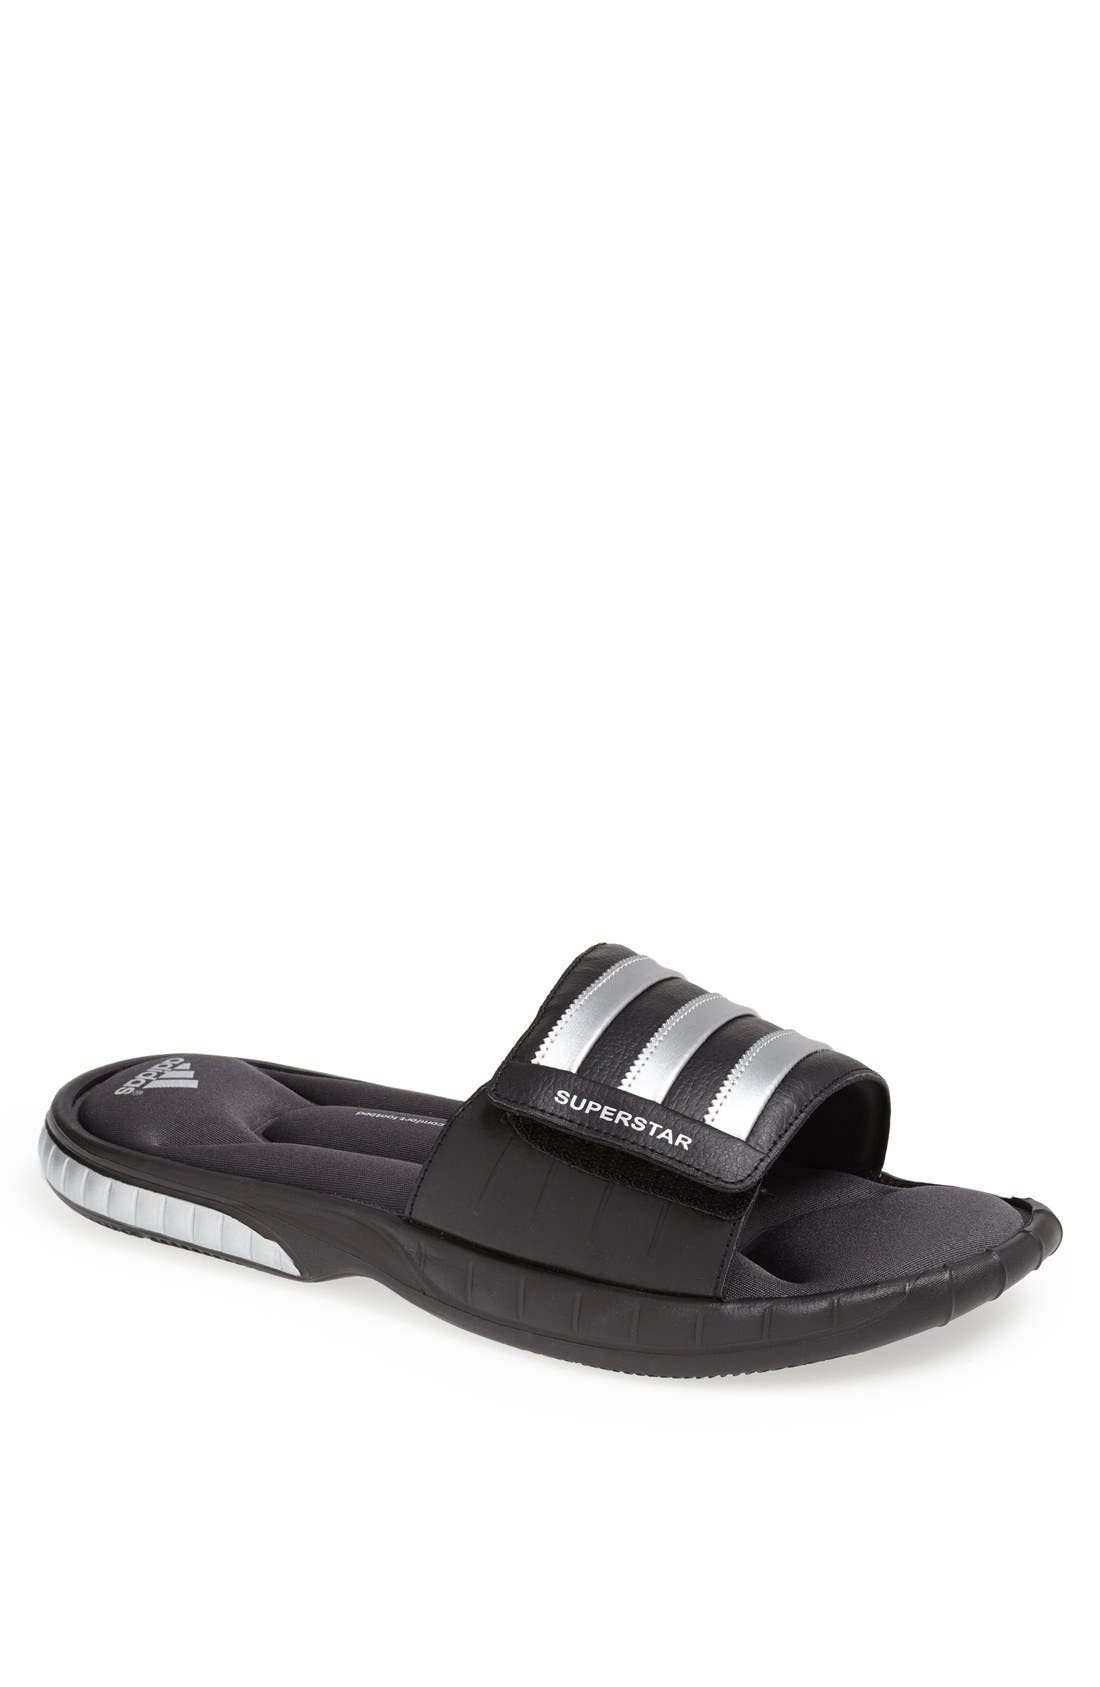 Main Image - adidas Superstar 3G Slide Sandal